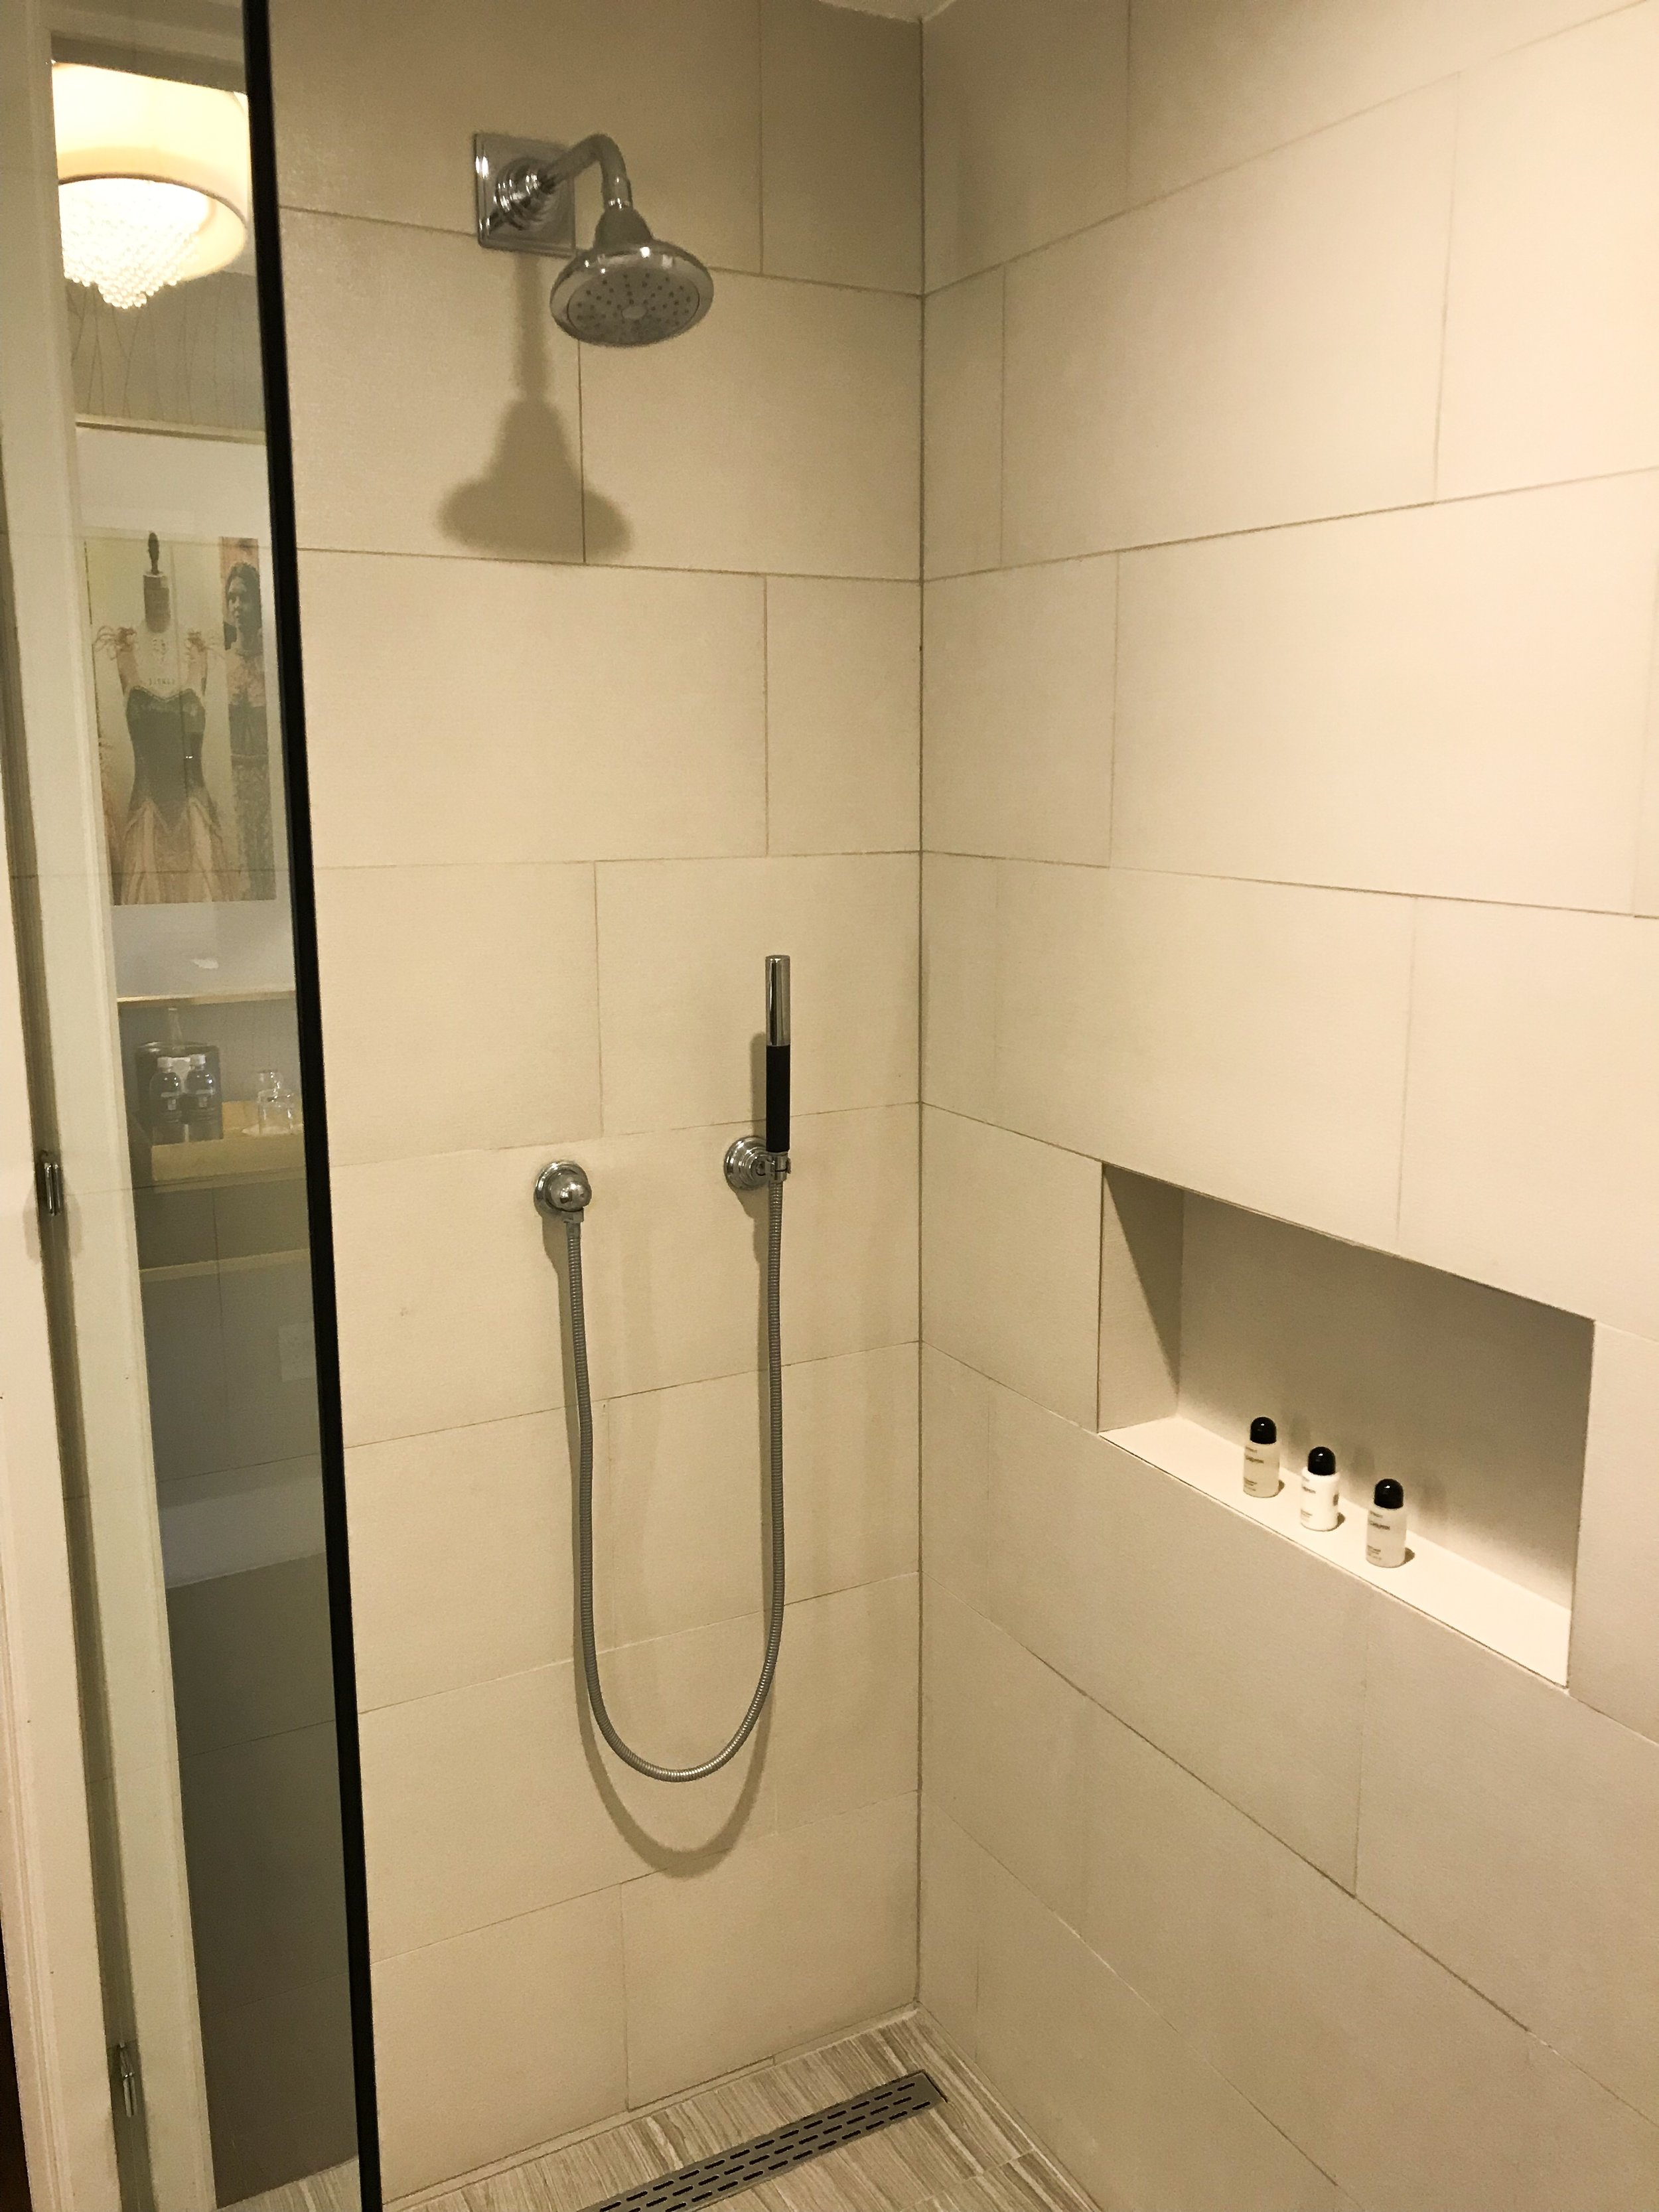 The shower had a handheld extension.